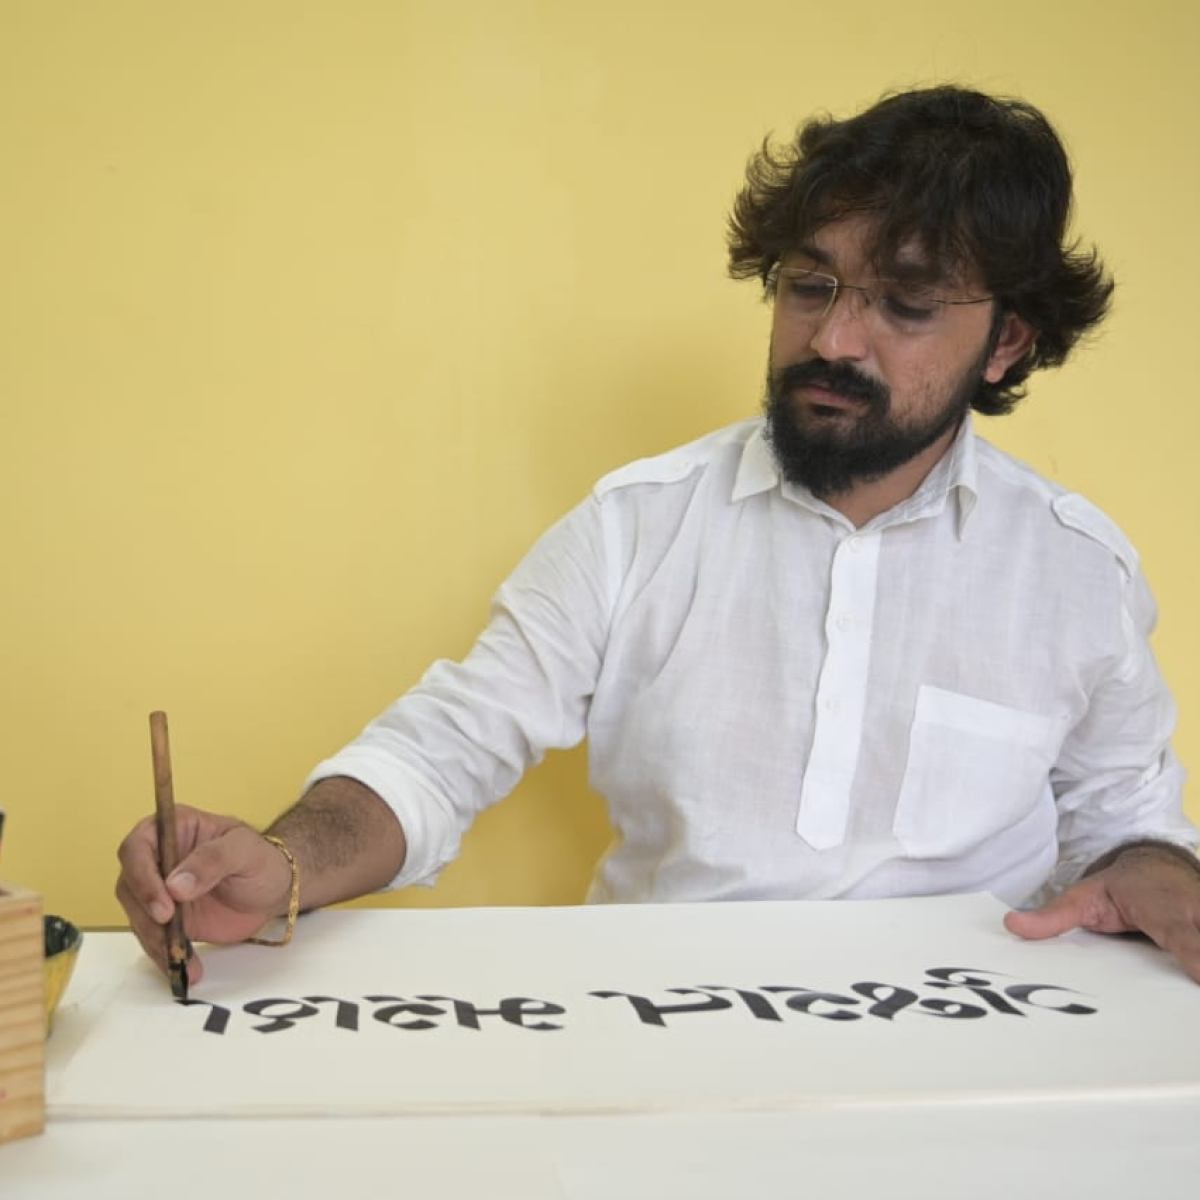 A calligraphic tribute to the National Anthem